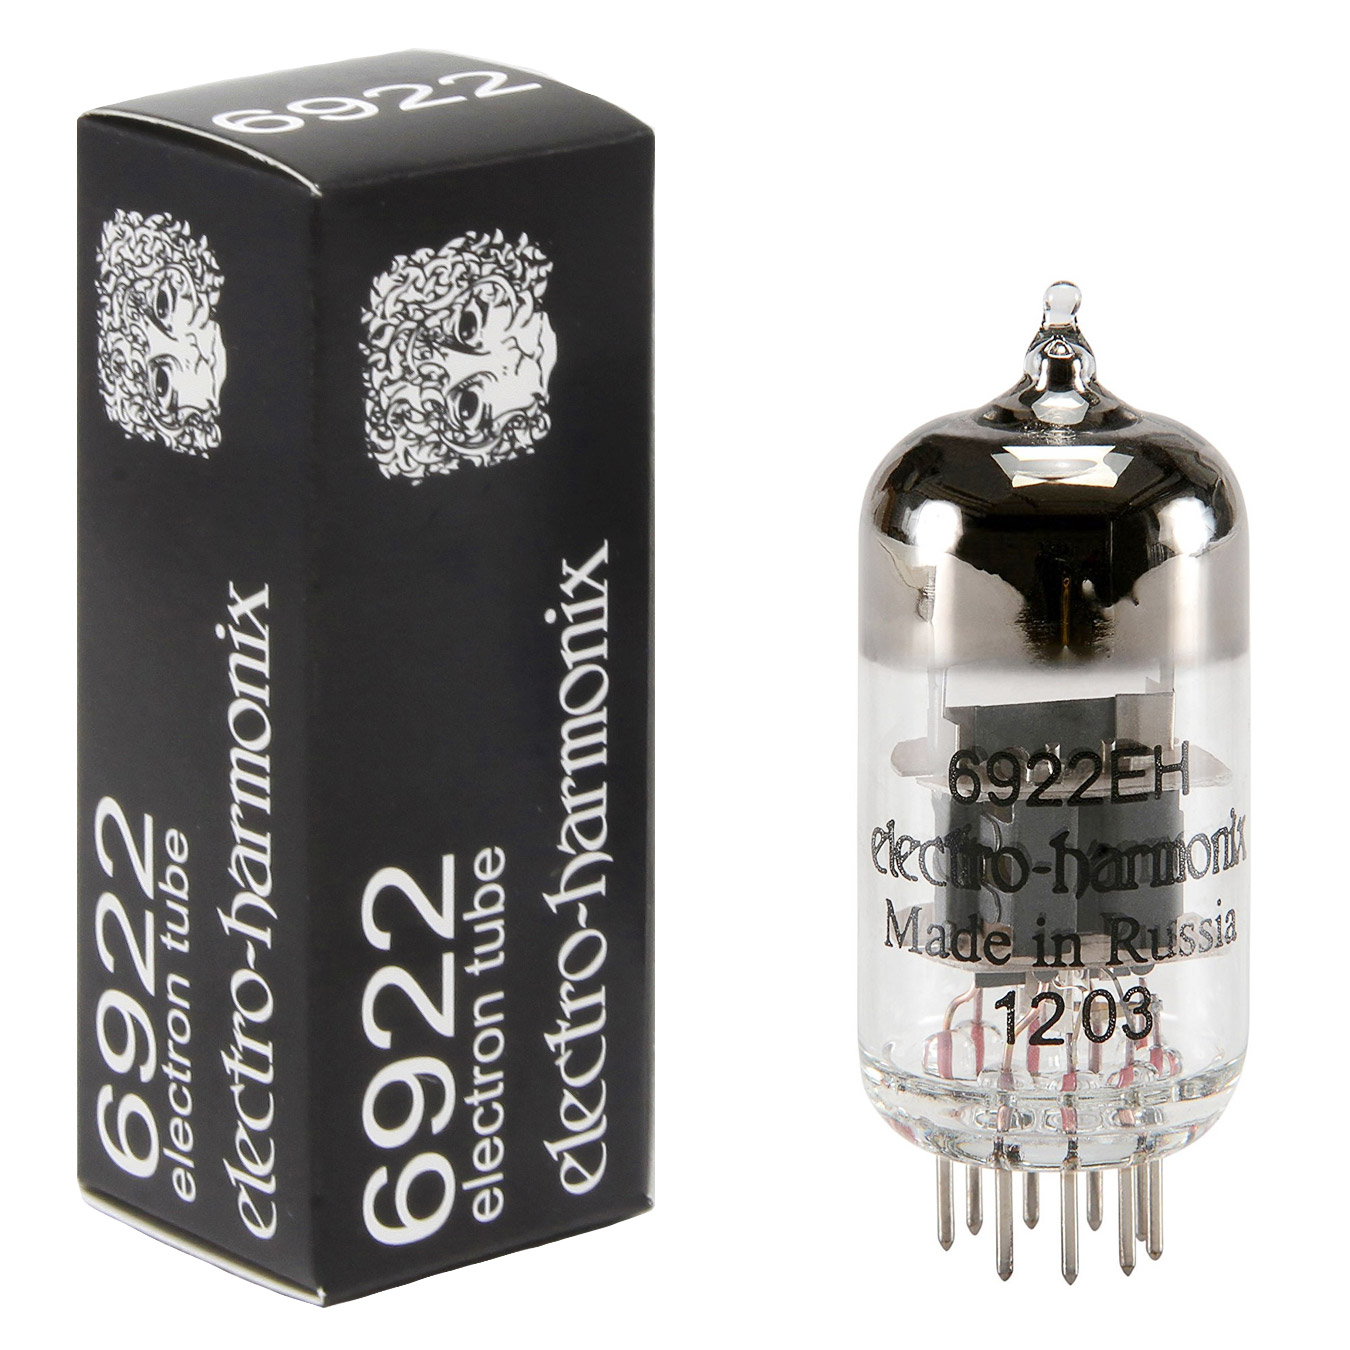 Electro-Harmonix 6922 EH Vacuum Tube Single by New Sensor